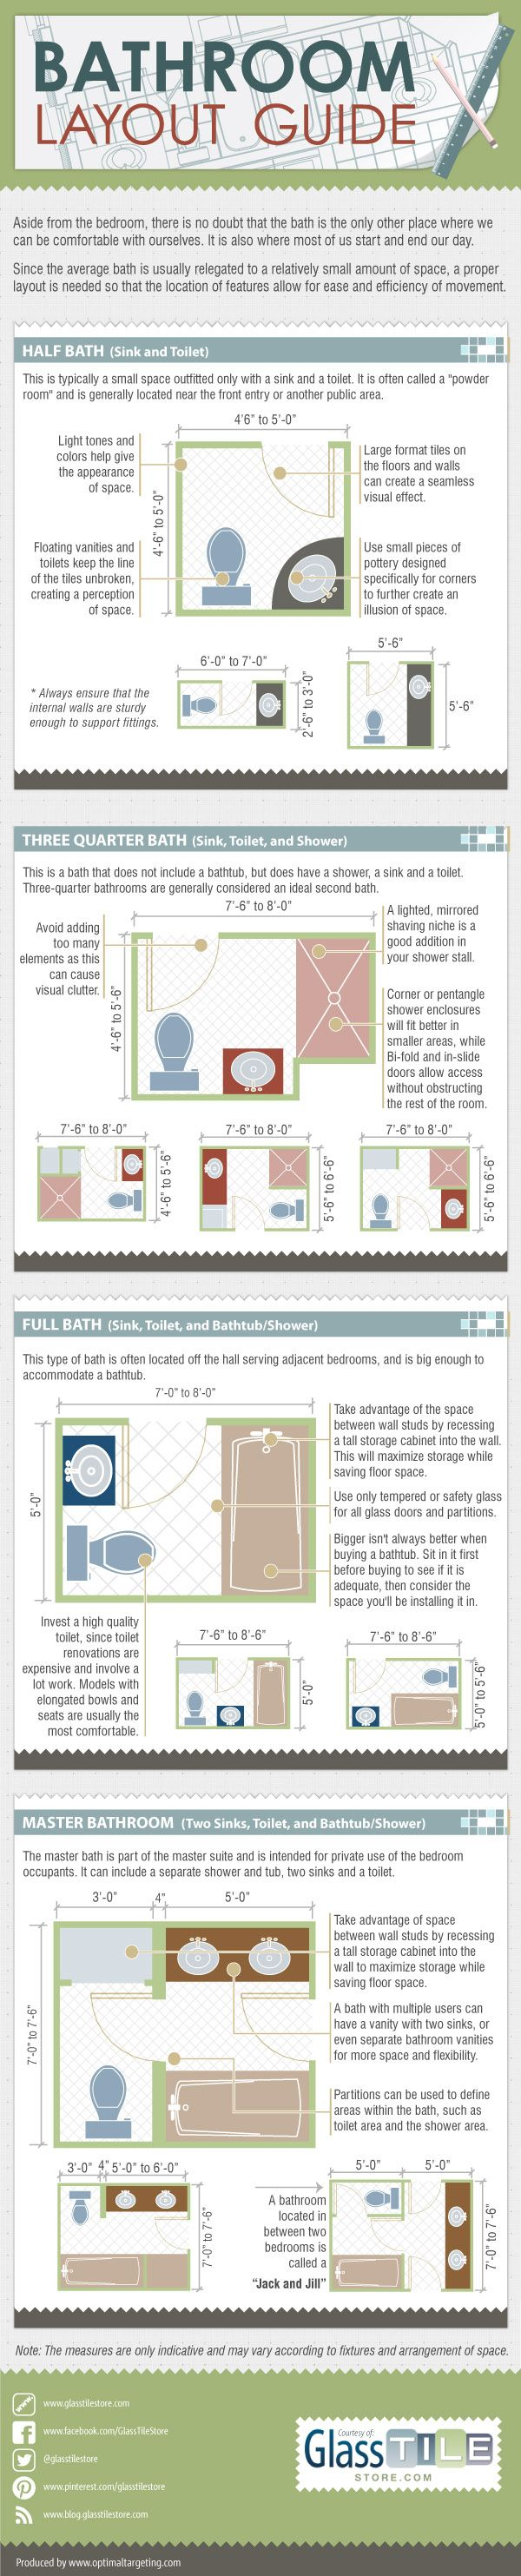 Picture Gallery Website Make the Most of Your Bathroom With This Practical Layout Guide Infographic